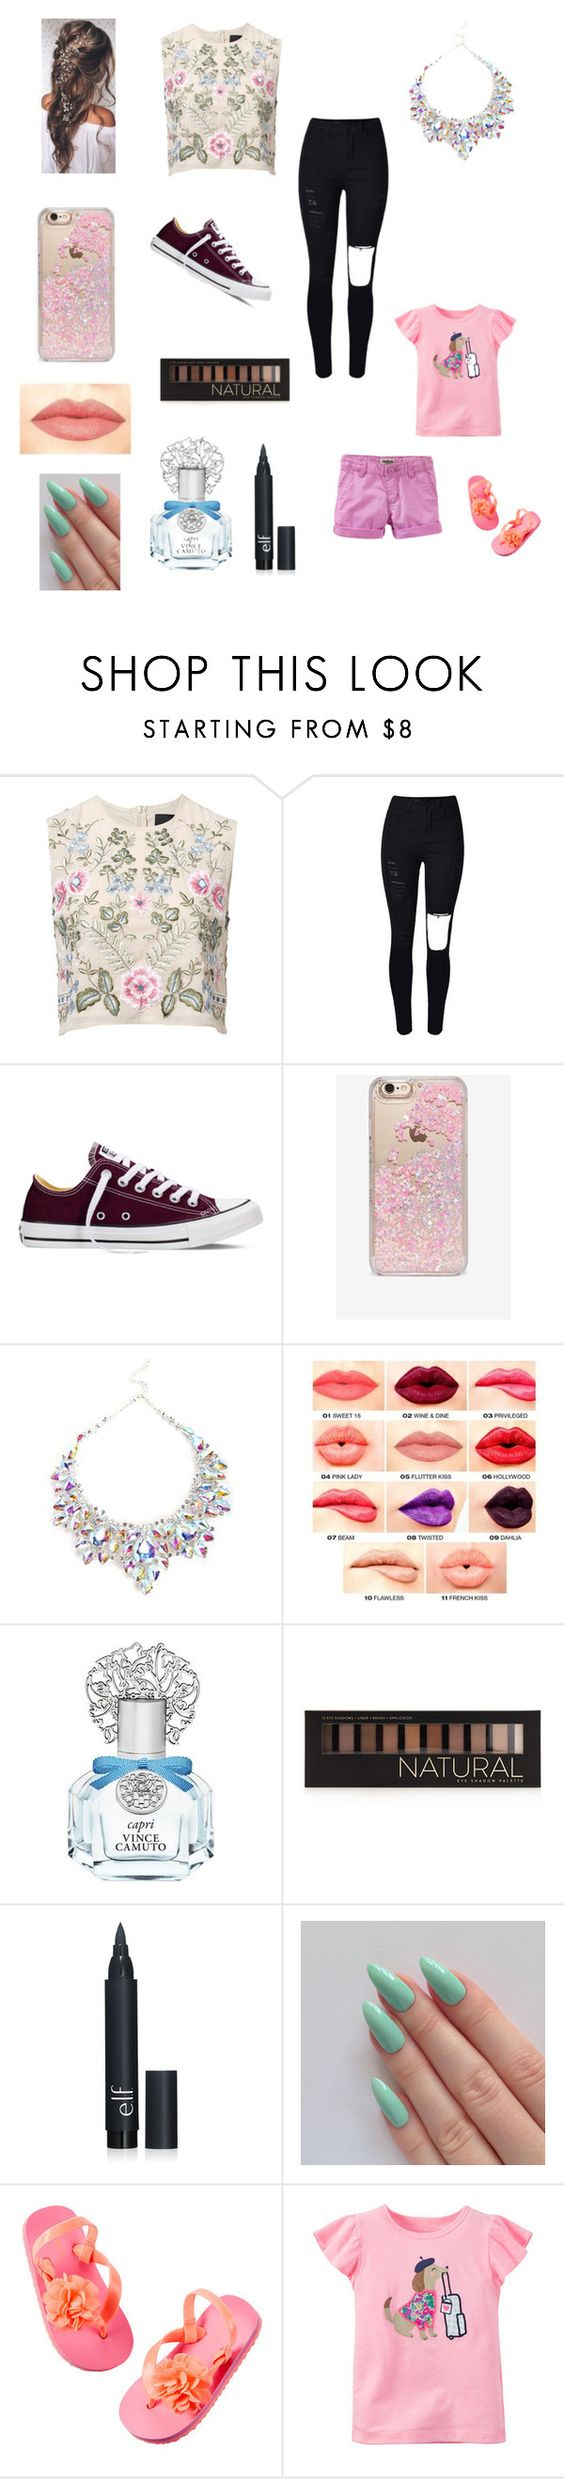 """""""Having mother and daughter time"""" by bellzellz ❤ liked on Polyvore featuring Needle & Thread, Converse, Skinnydip, NYX, Vince Camuto, Forever 21 and Carter's"""